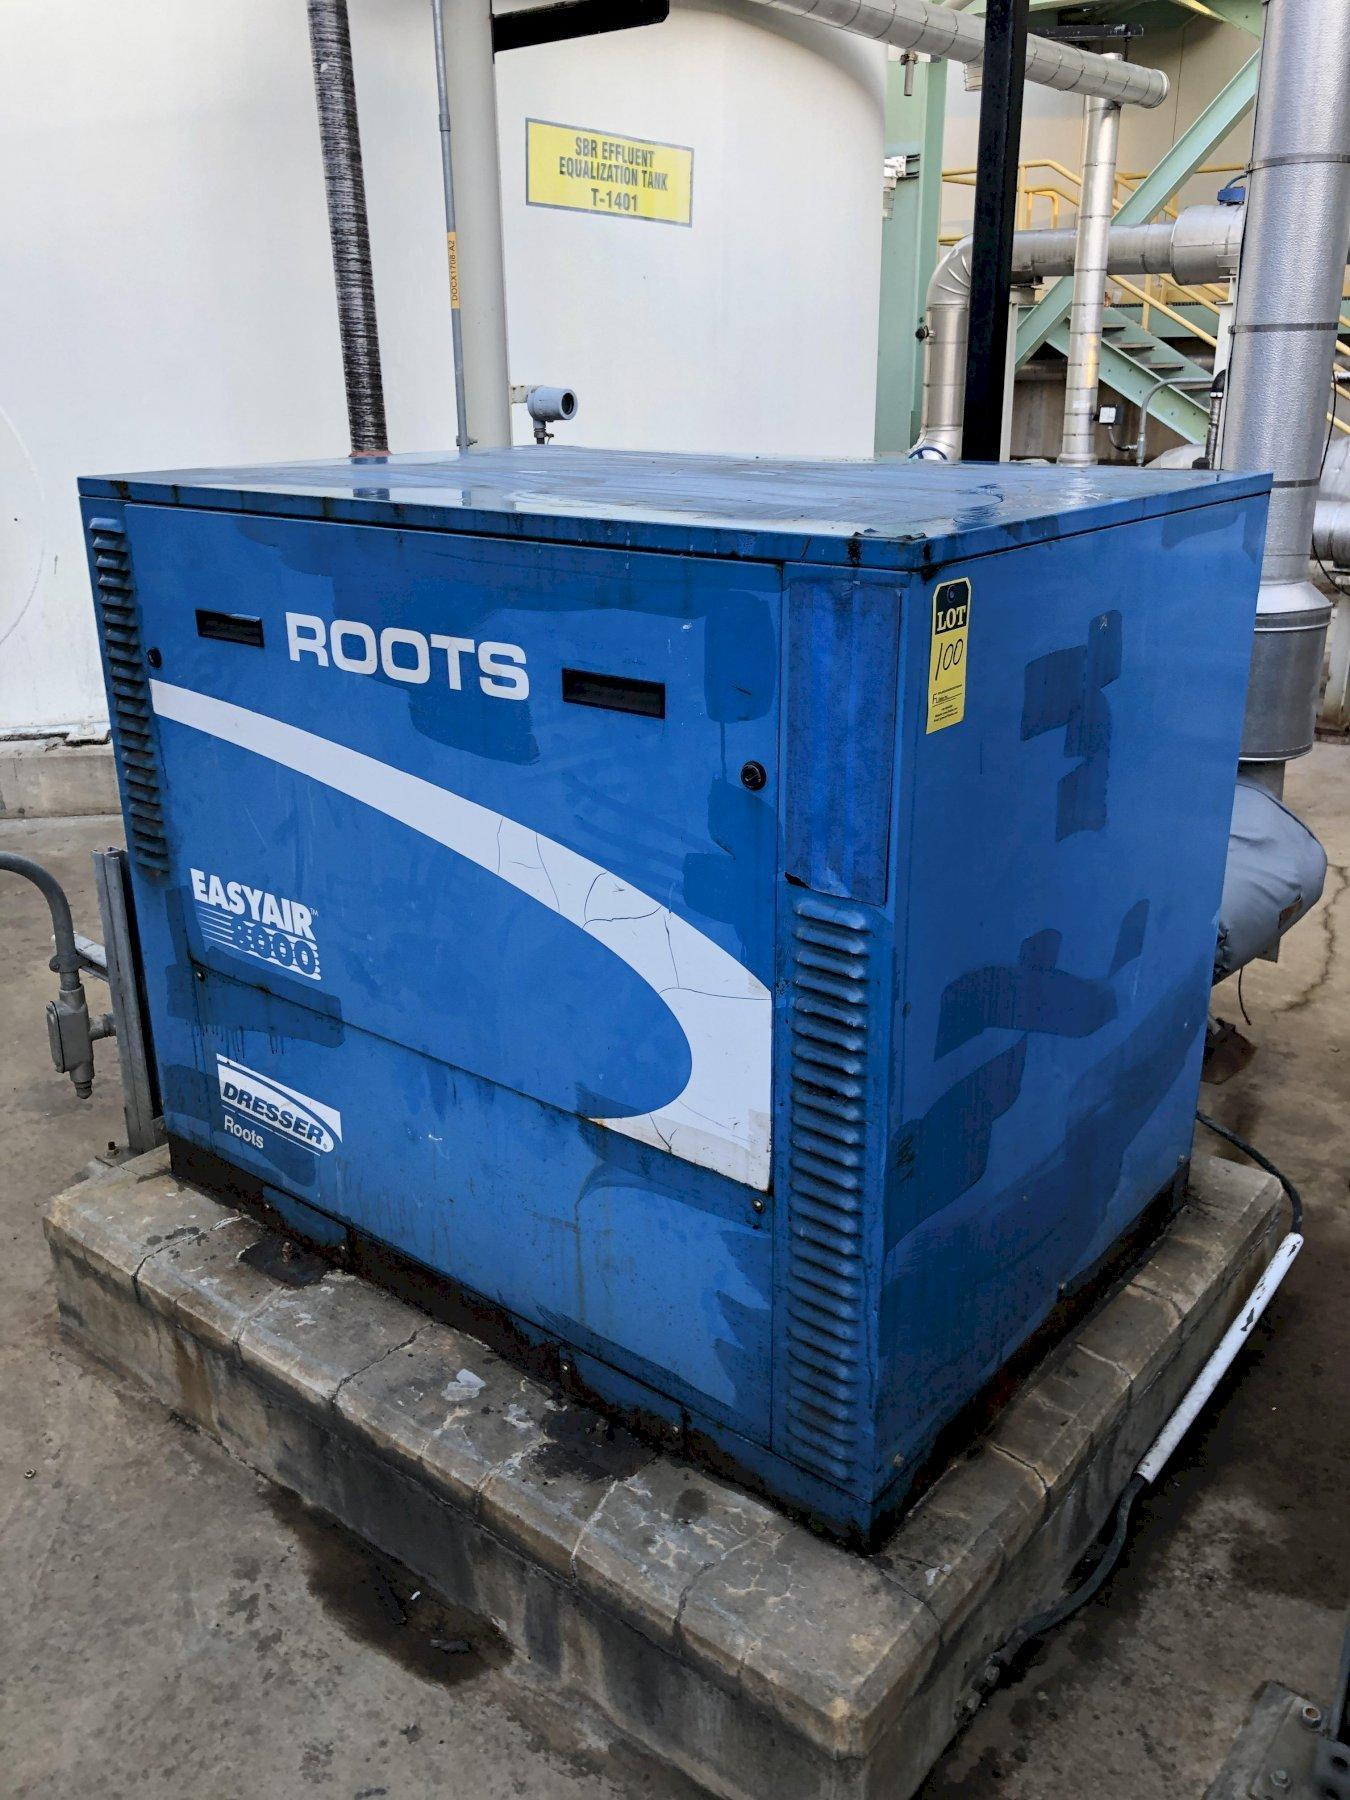 Roots easyair 8000 blower